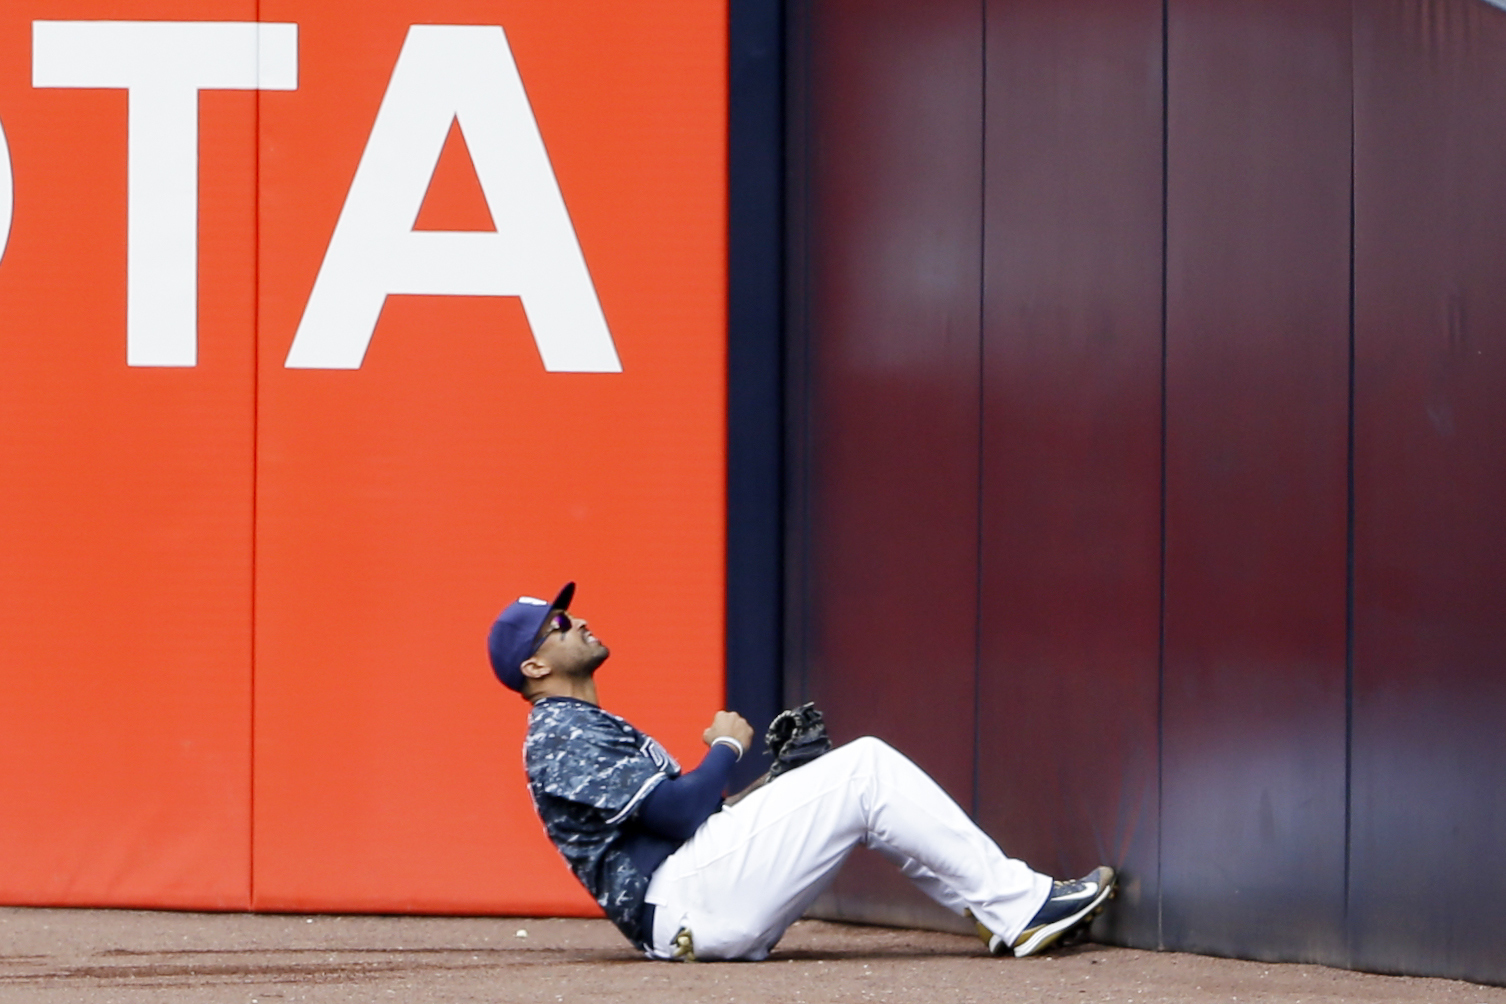 San Diego Padres right fielder Matt Kemp reacts after missing the catch on a foul ball from St. Louis Cardinals' Stephen Piscotty during the sixth inning of a baseball game Sunday, April 24, 2016, in San Diego. (AP Photo/Gregory Bull)